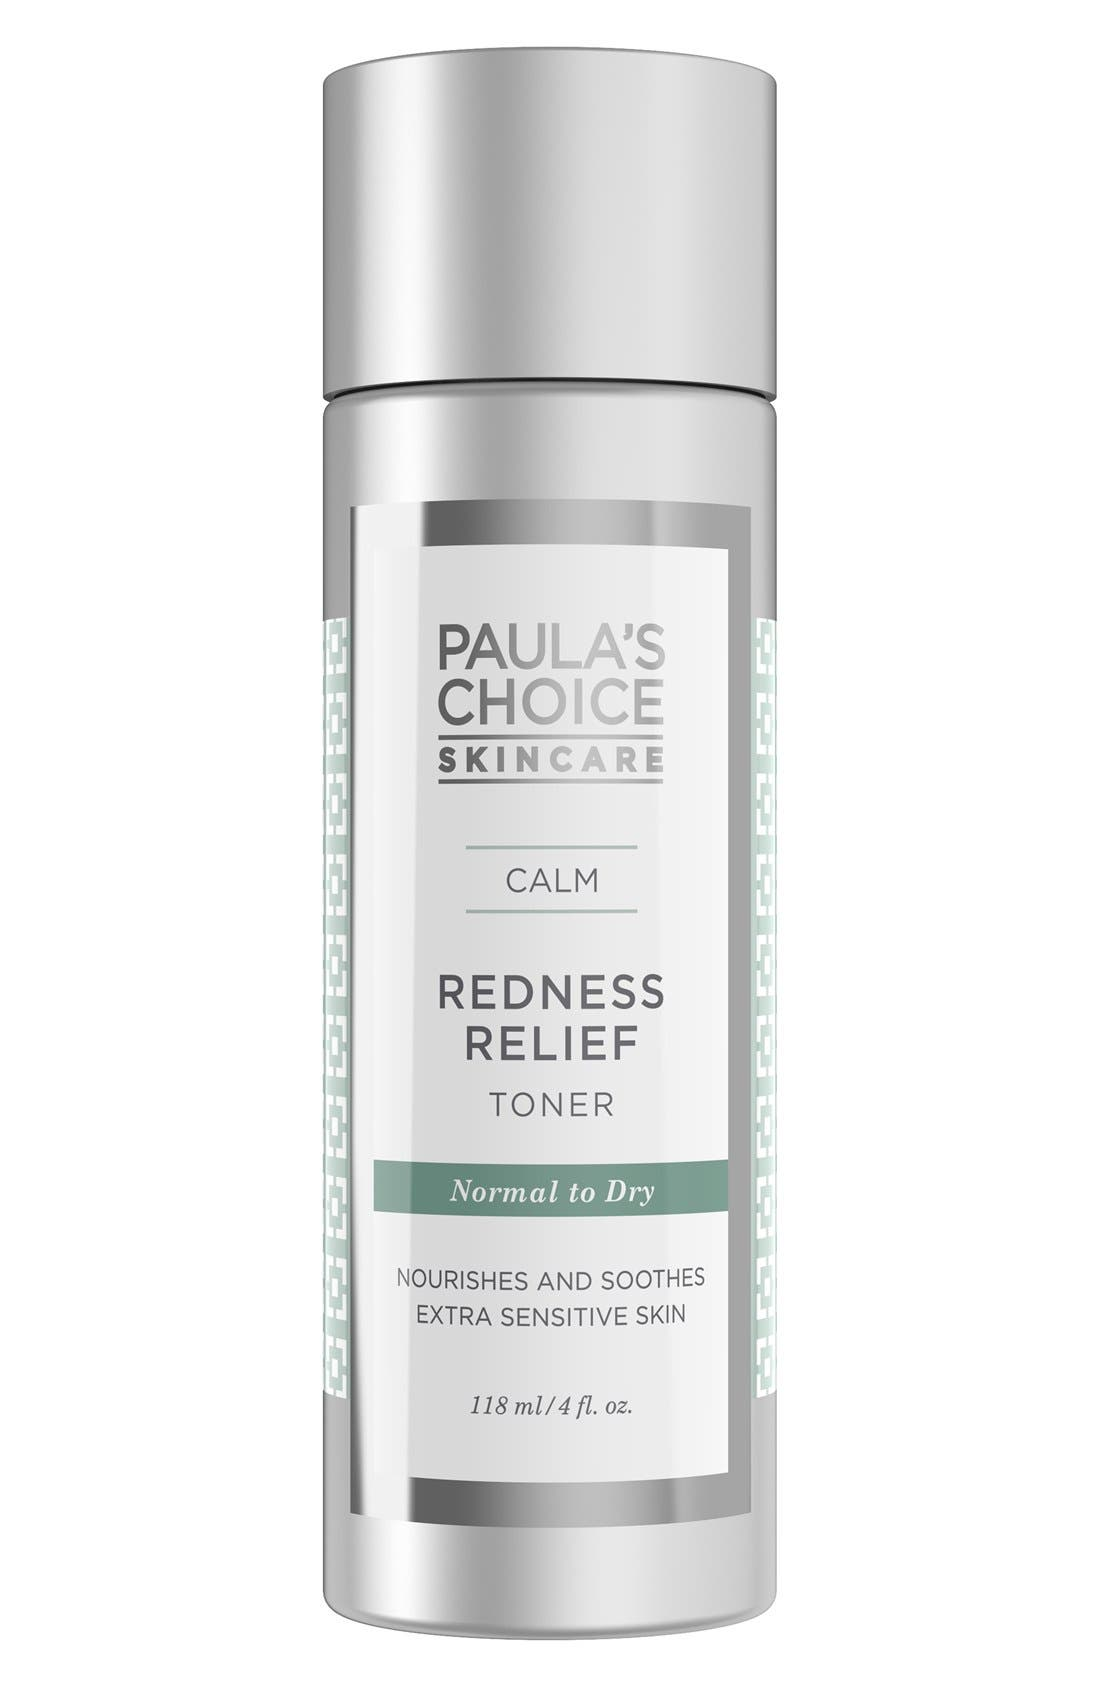 Paula's Choice Calm Redness Relief Toner